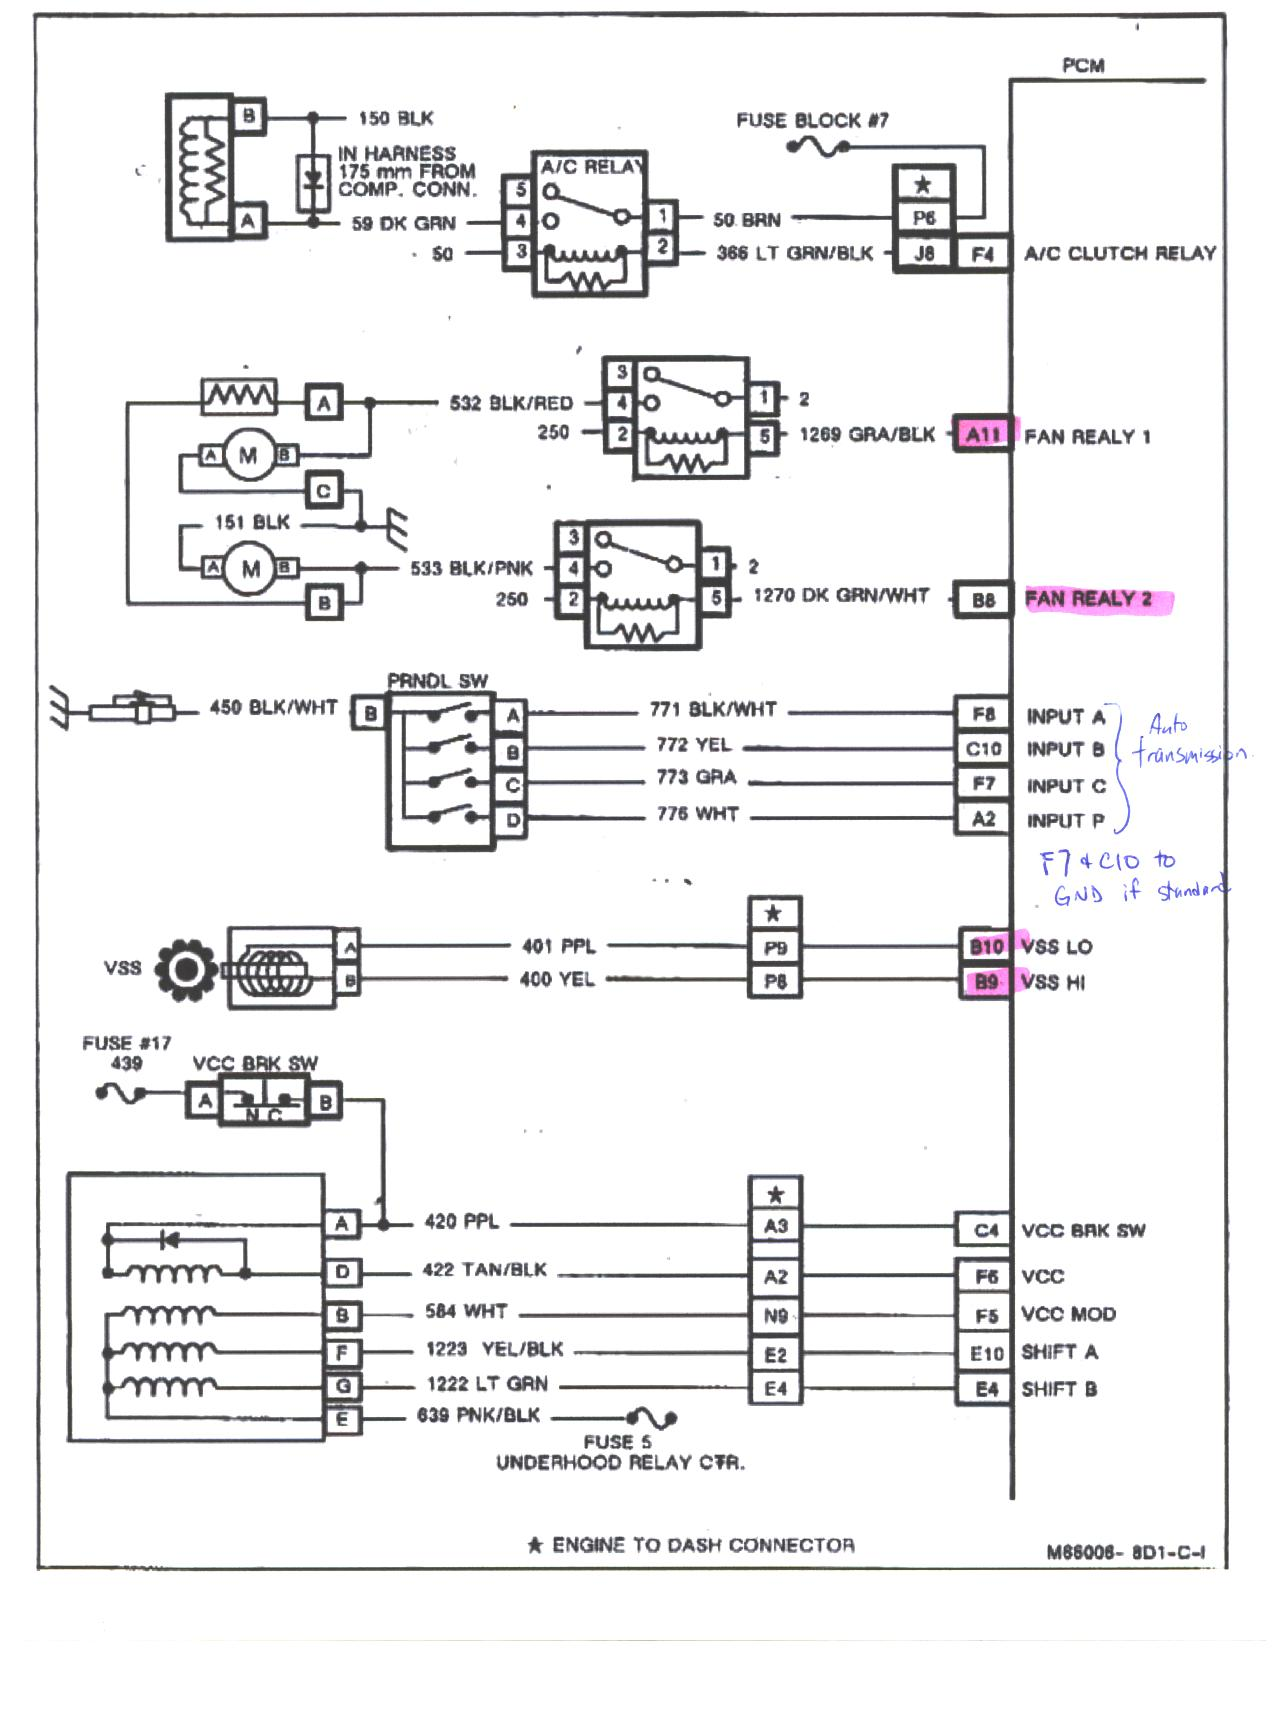 chevy astro van wiring diagram IYgoePB chevy astro van wiring diagram image details 2000 Astro Van Wiring Diagram at mifinder.co